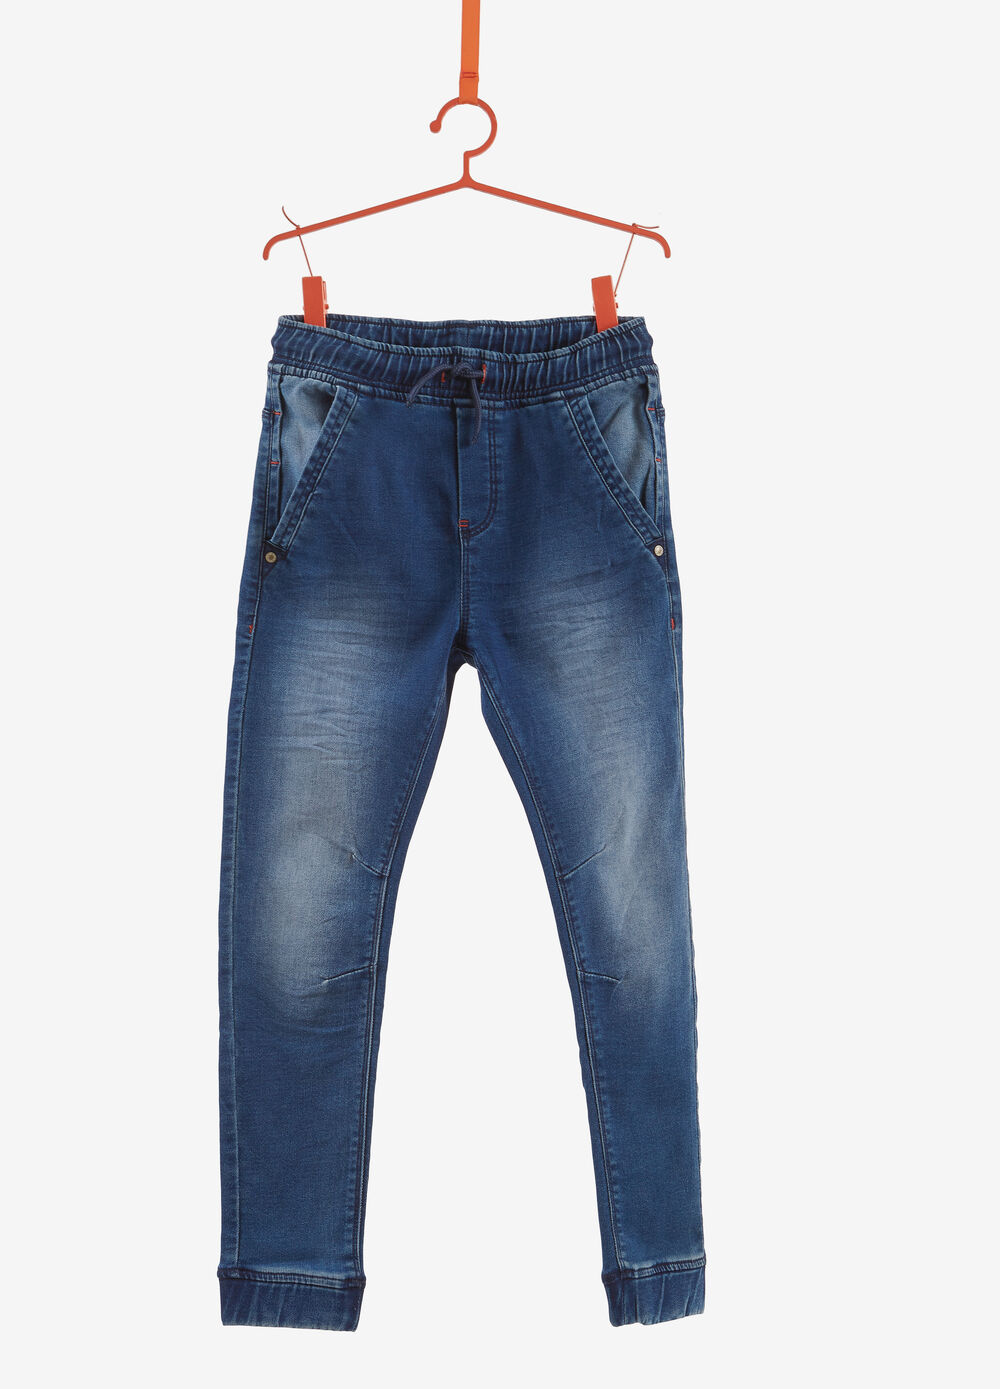 Cuff hem, worn stretch jeans with elasticated waistband